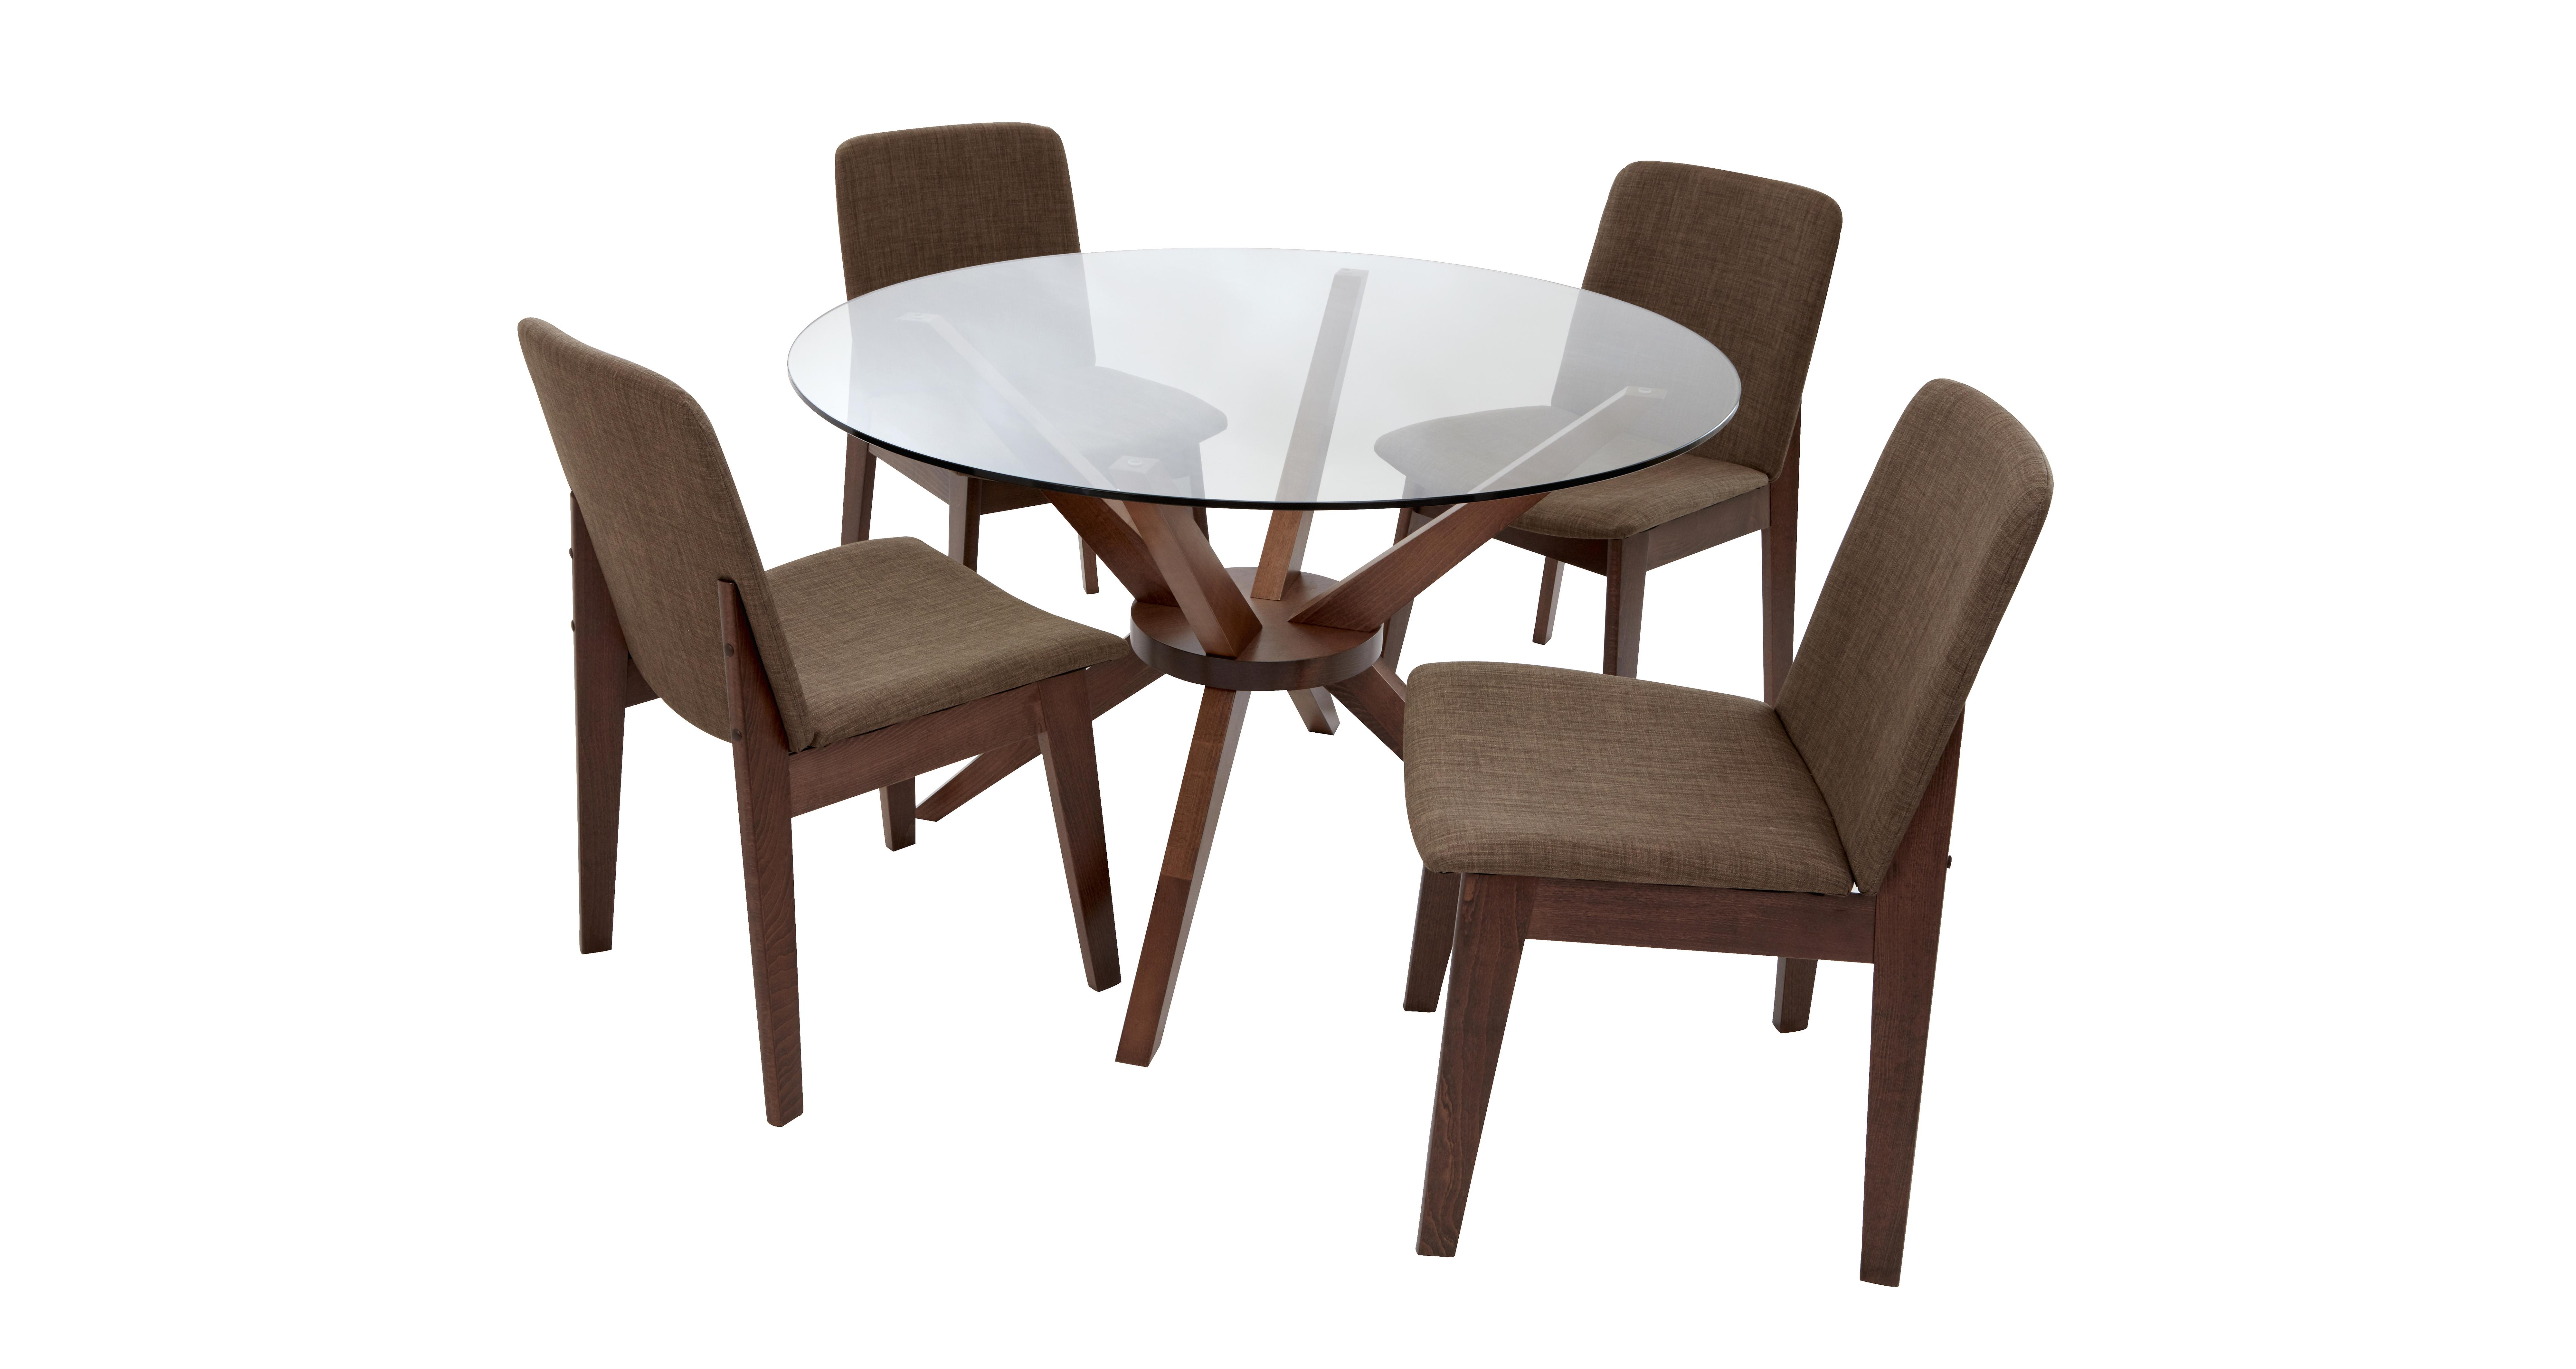 Kitsch Round Glass Table Amp Set Of 4 Chairs Dfs